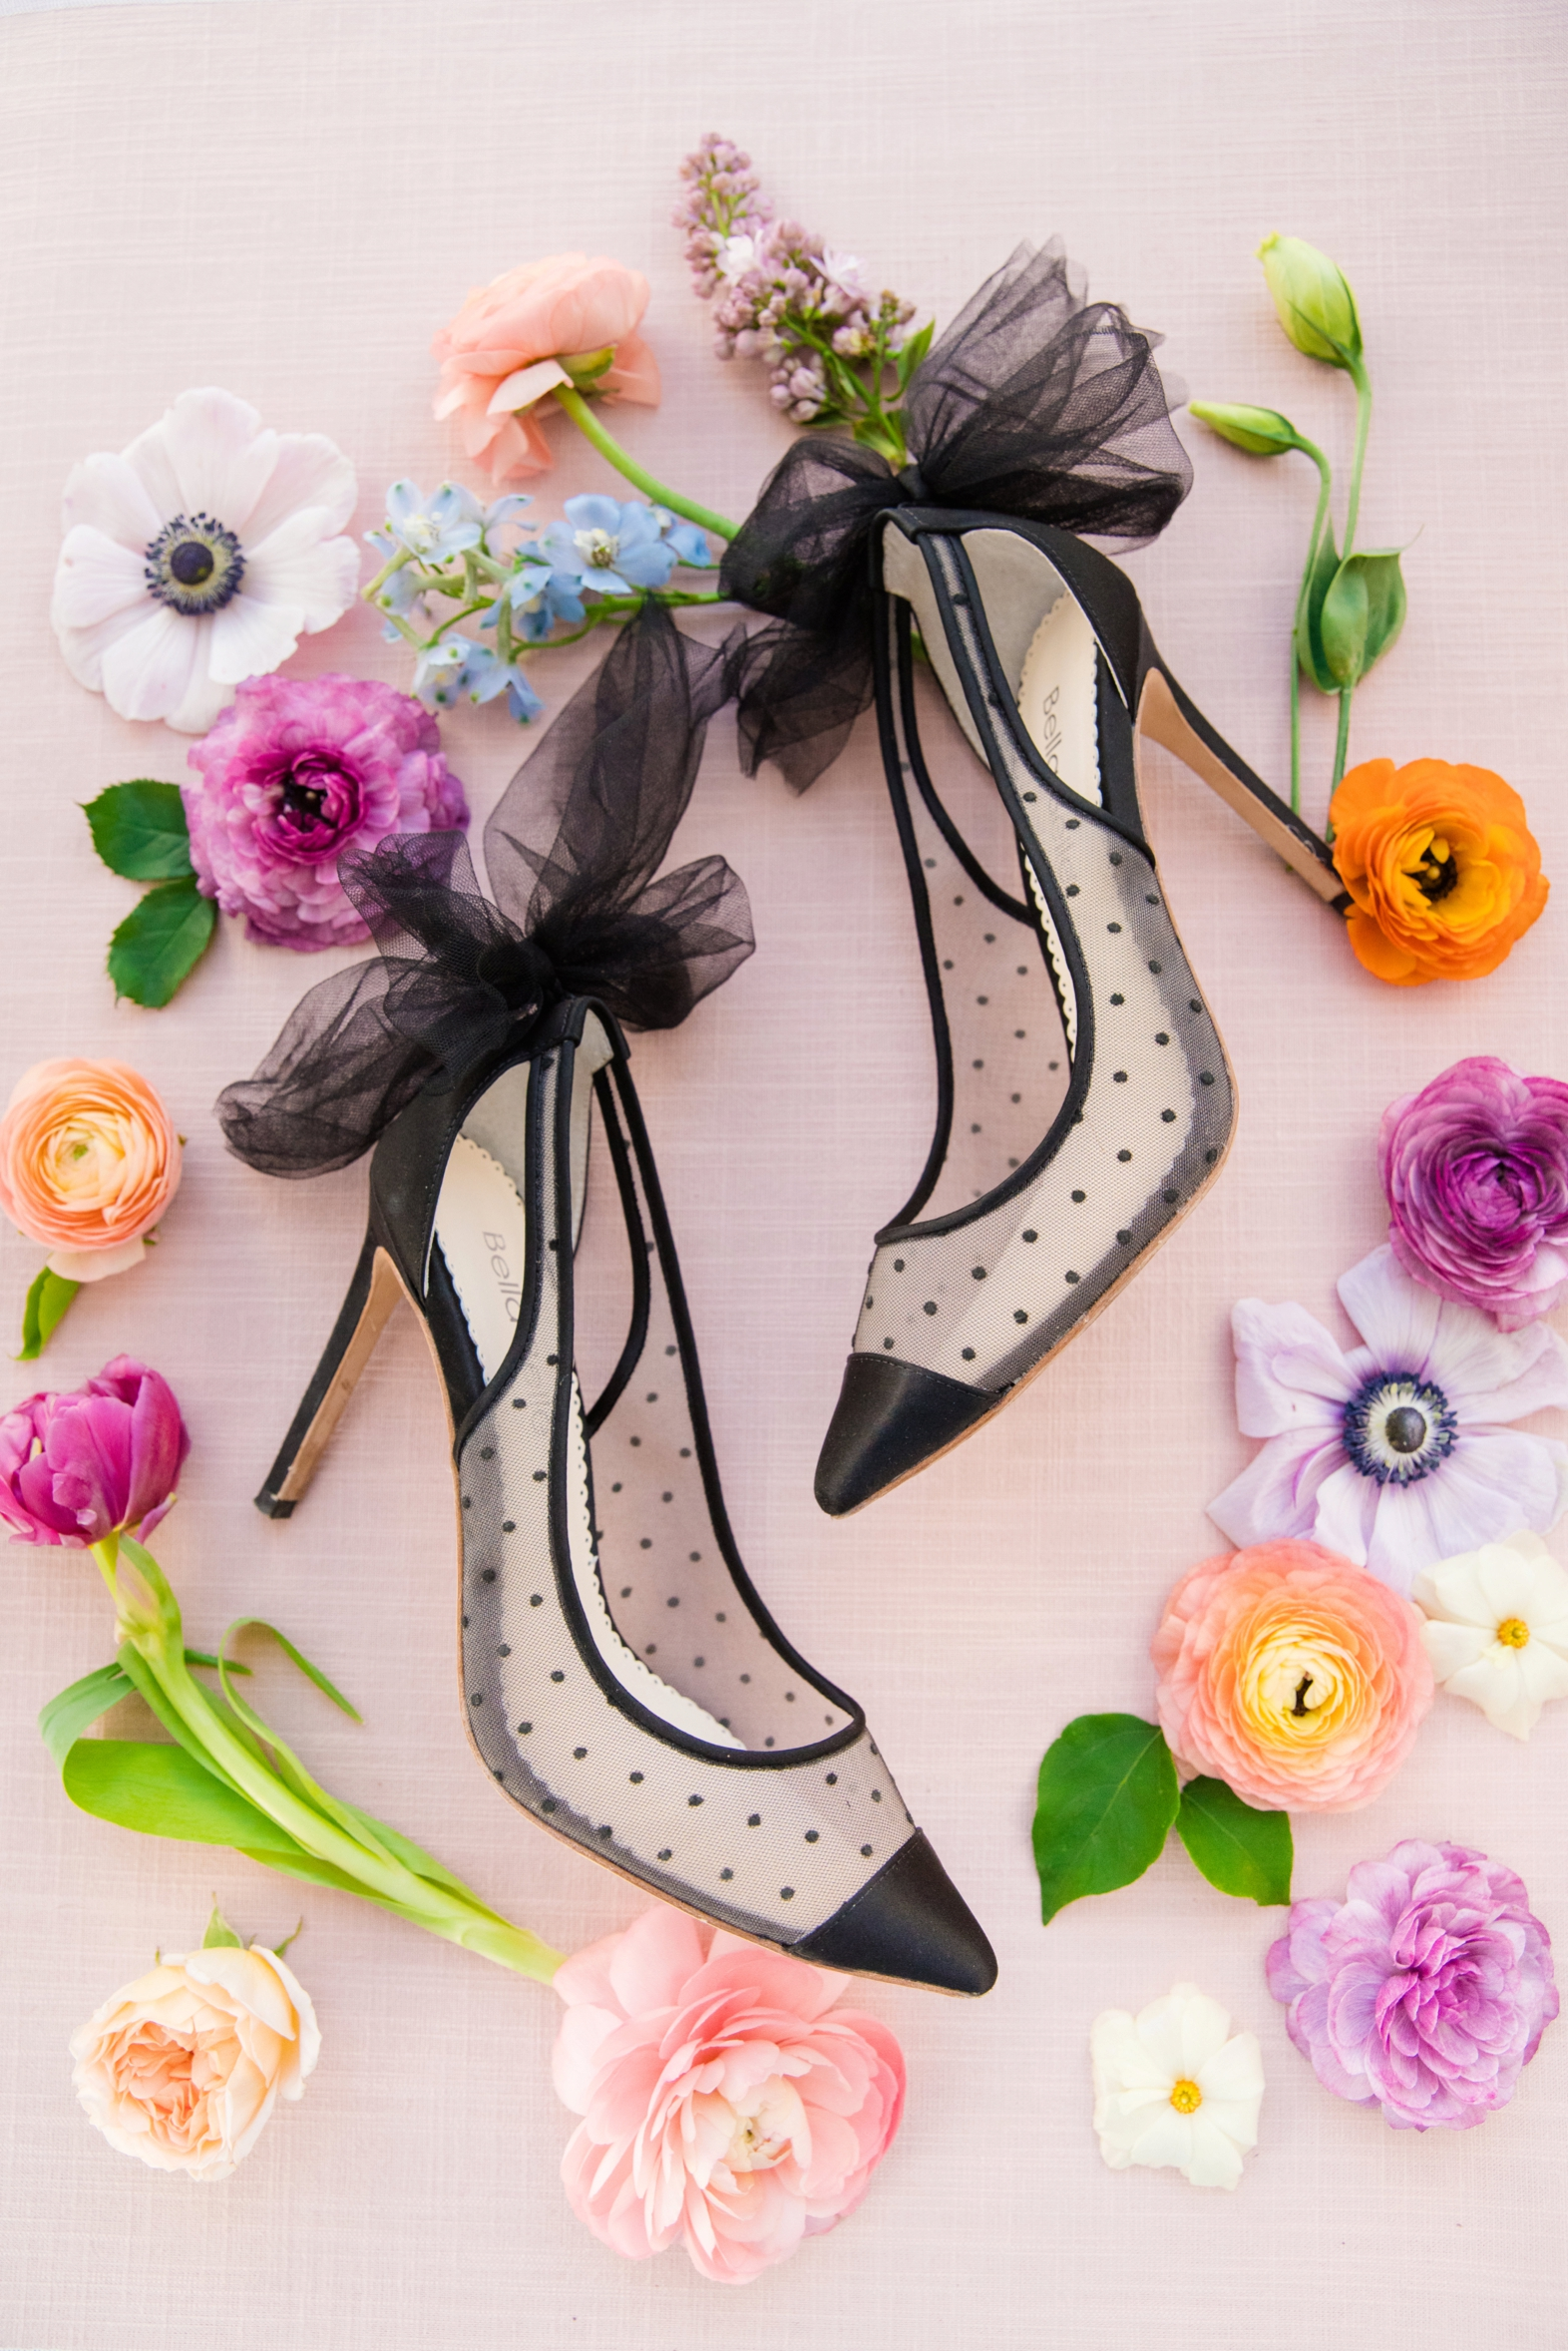 spring-flowers-and-ribboned-slingback-pumps-with-polka-dots-dana-cubbage-weddings